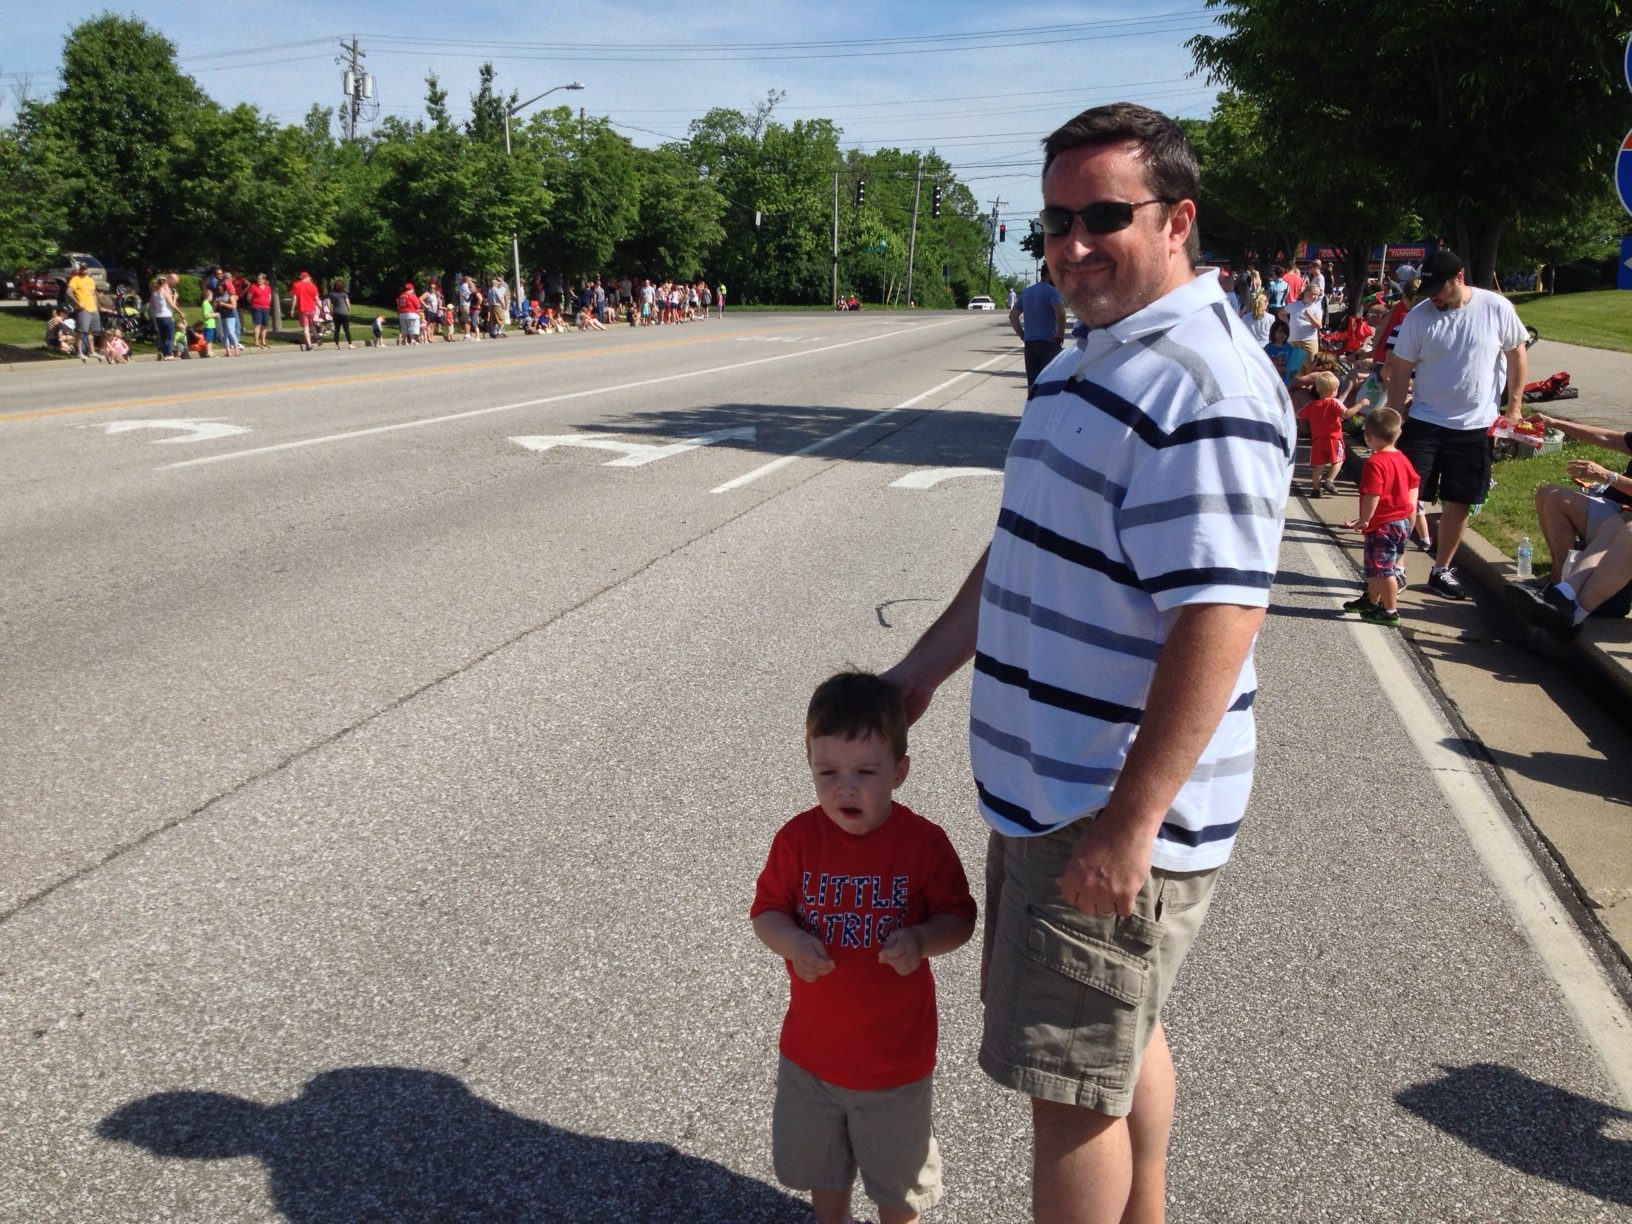 Chris Kennedy of Burlington and his son, Luke, enjoy their first Florence Memorial day Parade.